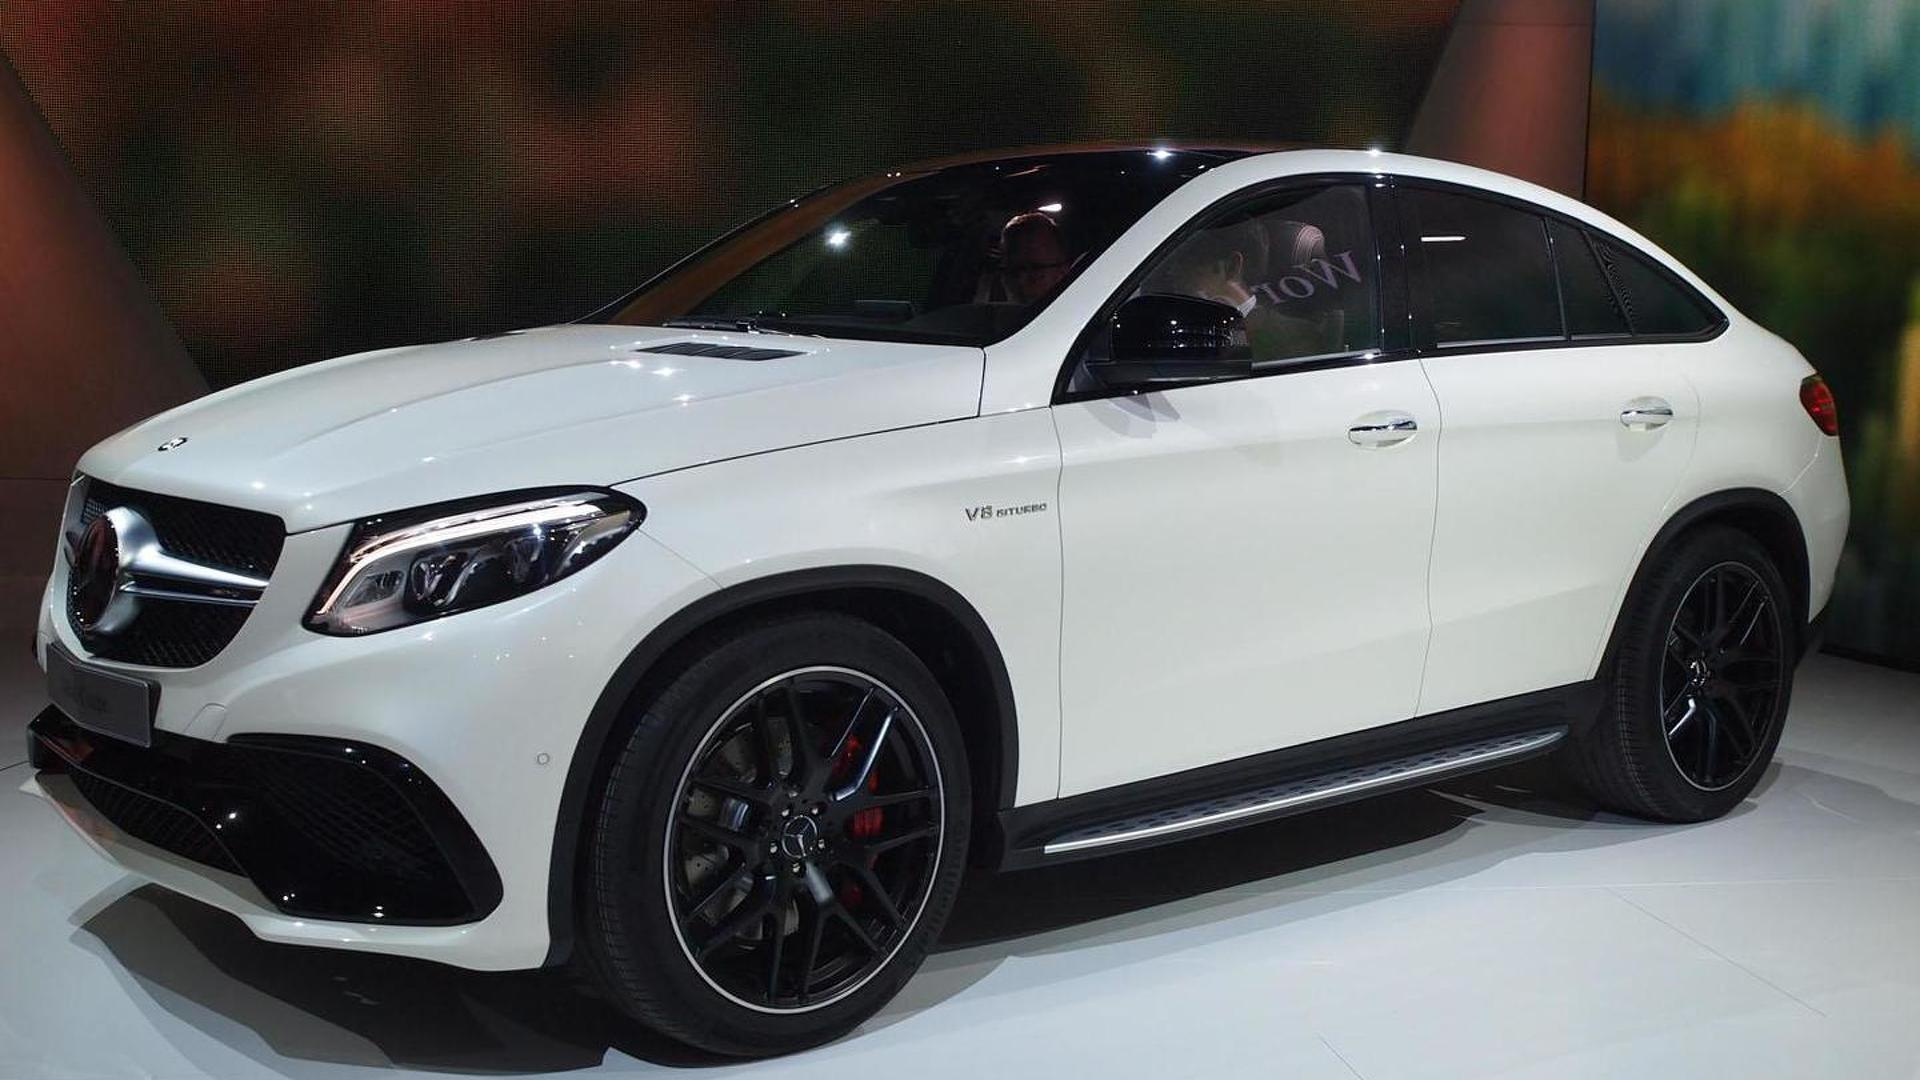 https://icdn-8.motor1.com/images/mgl/EPQye/s1/2015-535721-mercedes-gle63-amg-coupe-mercedes-gle63-amg-s-coupe-live-at-naias1.jpg